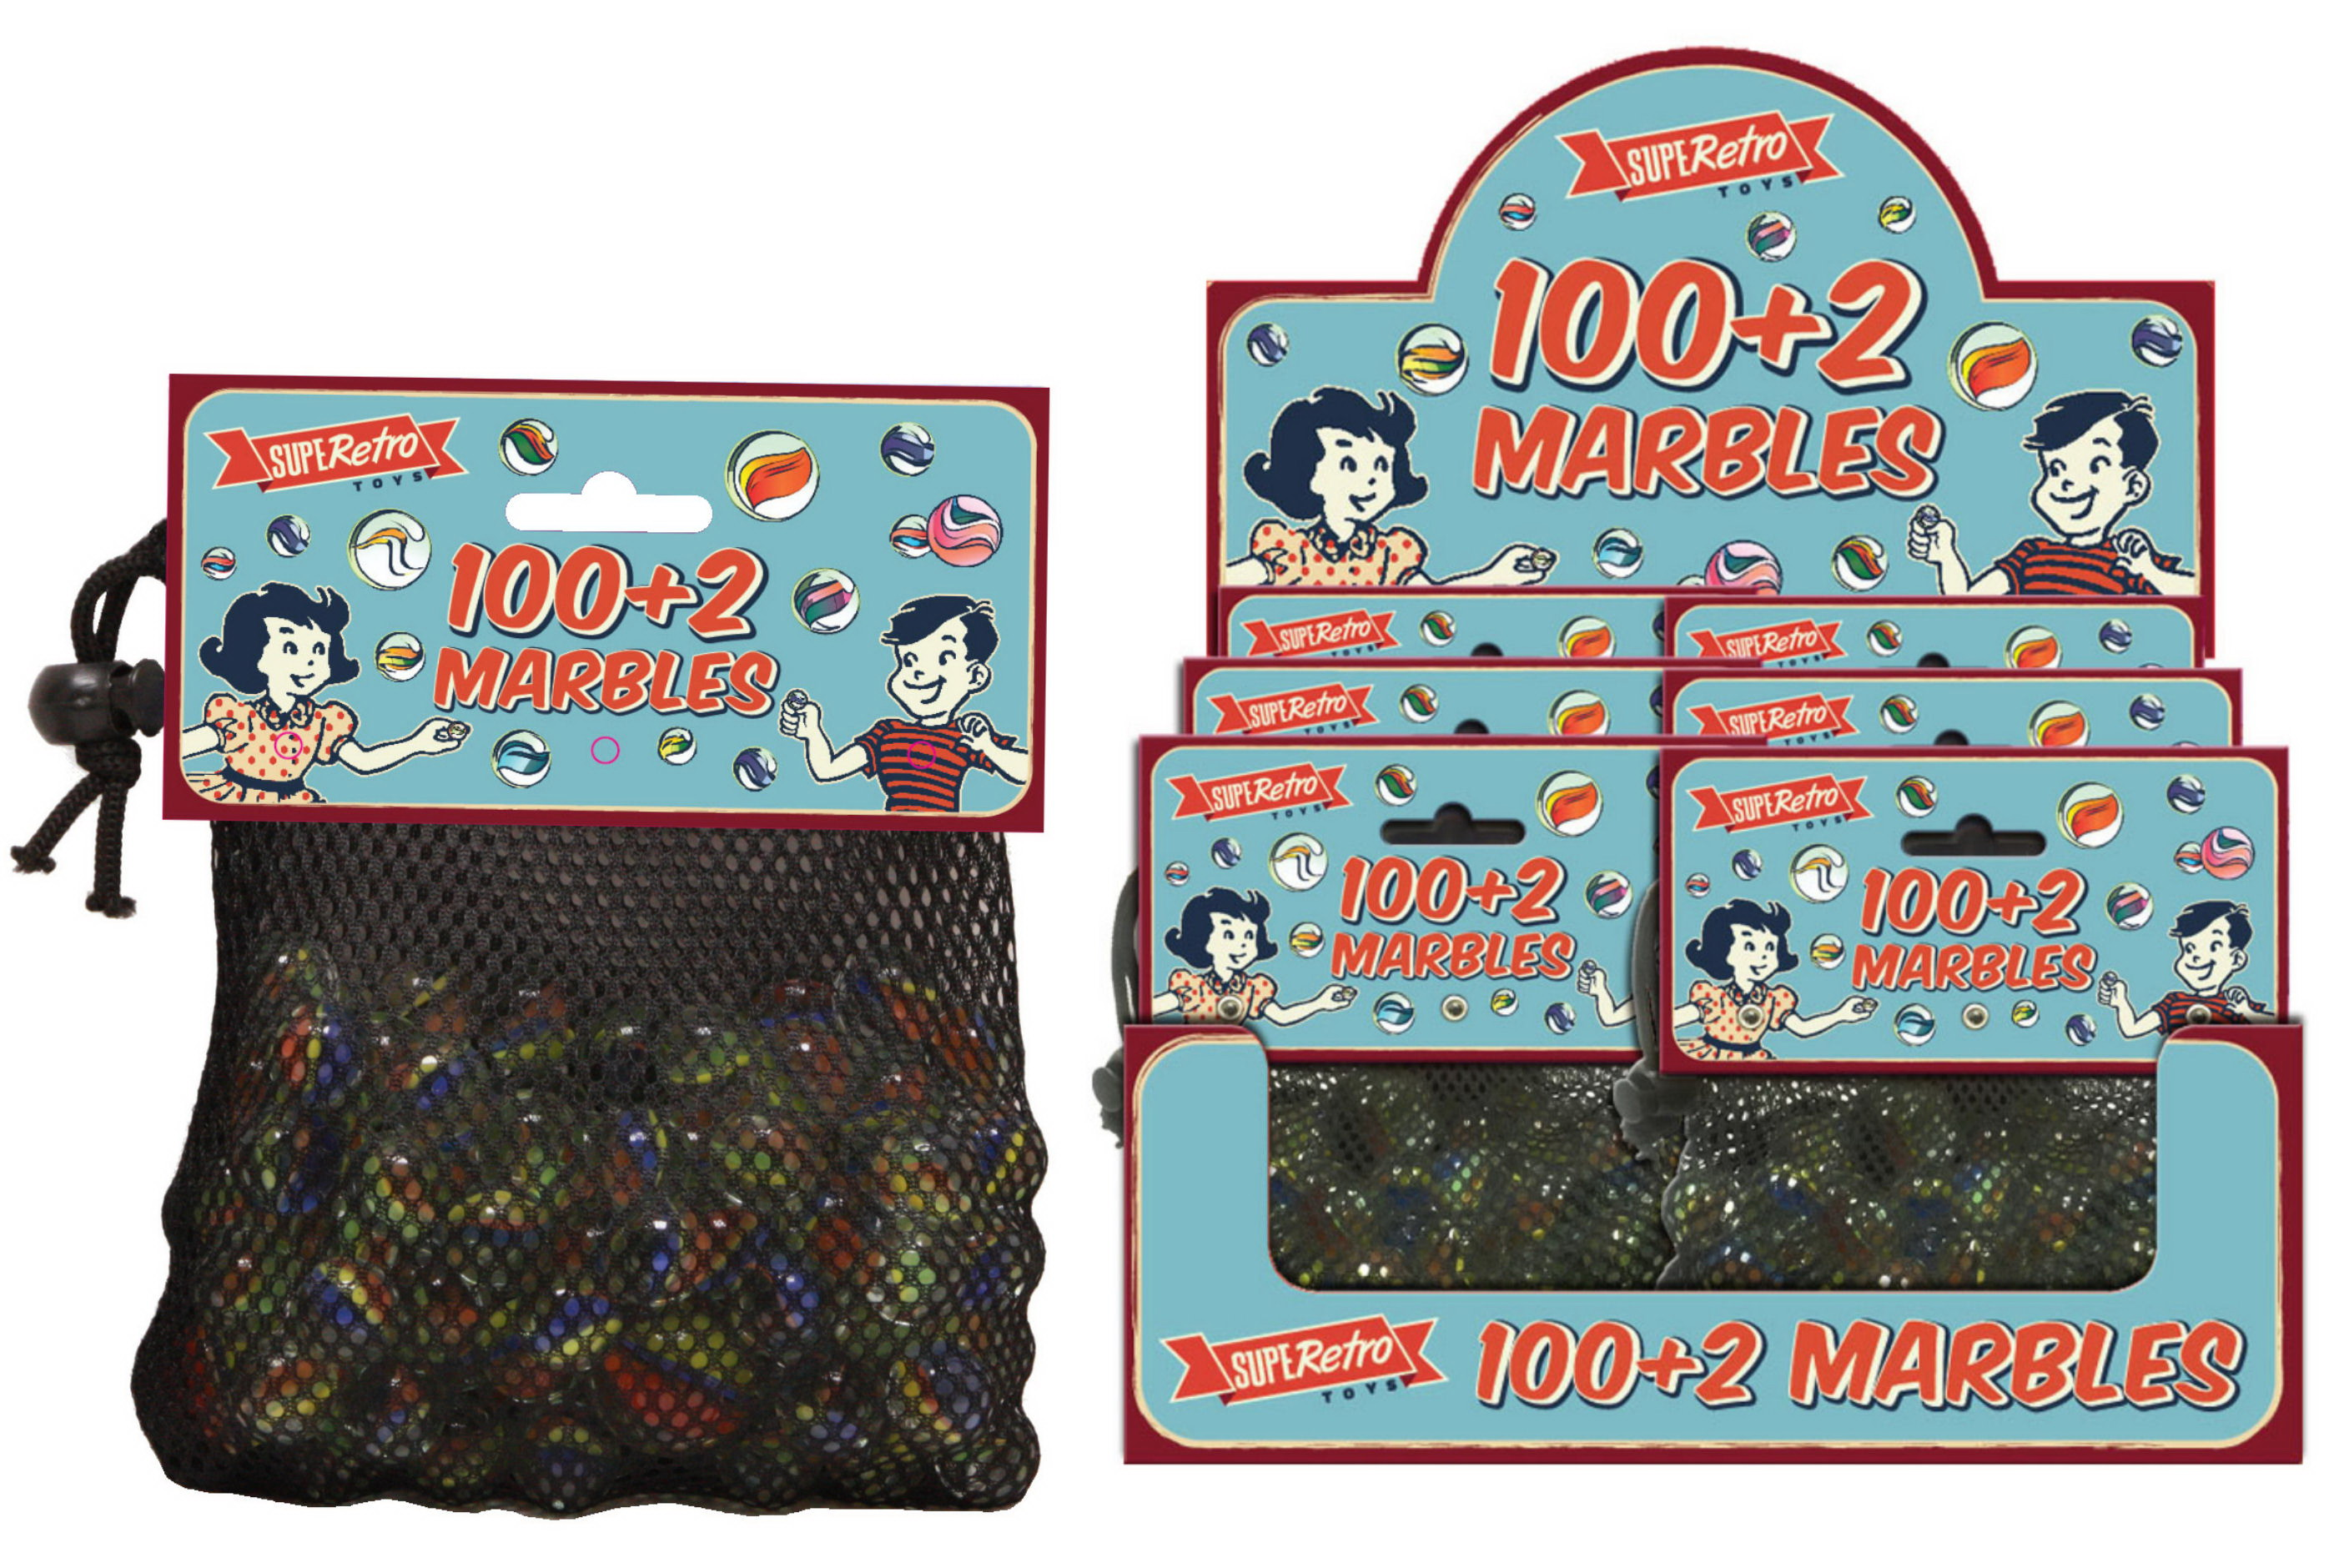 100+2 Marbles In Net Bag Headercard / Display Box